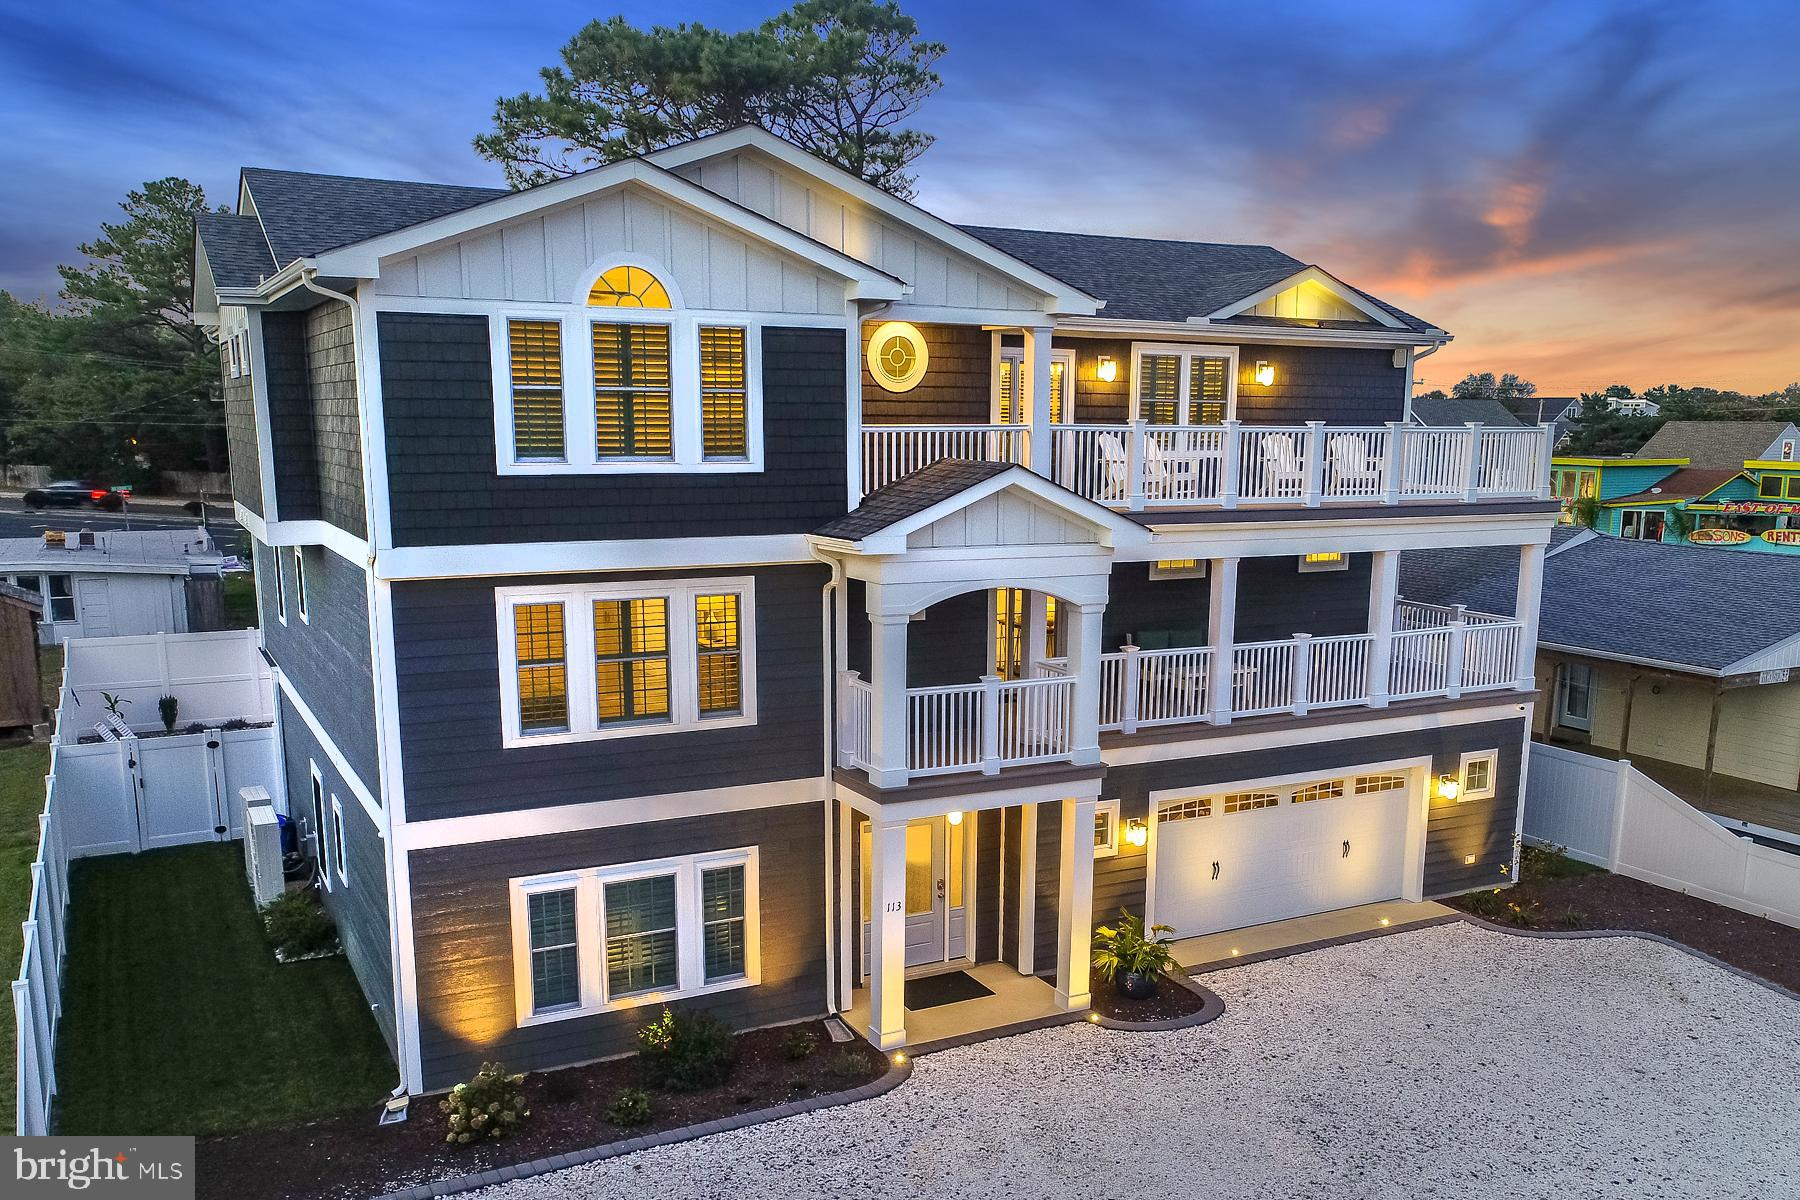 Introducing 113 Houston Street in Dewey Beach! This thoughtfully designed custom-built beach home offers stunning interior and exterior spaces with impeccable taste and high-quality features throughout. An inverted floor plan was designed to maximize the ocean views from the prime living areas, offering over 5,000 square feet of interior space and over 1,300 square feet of decks. Energy efficiency certified and expansion options for an office and up to 8 bedrooms and 7 full & 2 half bathrooms; ideal for large family gatherings and capturing the highest possible rental income as an investment property. Located just over a block to the ocean on an oversized (100x75) and high elevated lot (not in a flood zone) with 2 garage spaces and extensive off-street parking. No details were overlooked with an emphasis on entertaining and maximizing outdoor spaces. A rear oasis includes an extensive paver patio, in-ground pool, hot tub, built-in Tiki Bar, outside showers, privacy fencing, and a separate stairway leading to the second-floor master bedroom suite. The lower level features a partial kitchen, dining area, family room, wainscoting, and wood-look tile throughout. An elevator provides convenience with access to all 3 levels. The third level offers an open and airy floor plan complete with a true chef's kitchen including stainless steel appliances, dual wall ovens, oversized fridge, kettle faucet, two under counter ice makers, custom cabinetry, granite countertops, and a large island with a separate sink. The kitchen overlooks the dining area and family room with vaulted ceilings, gas fireplace and surrounded by windows allowing for an abundance of natural light. This space leads to a superb outdoor deck ideal for entertaining. The 2nd-floor master suite is exquisite with a walk-in closet, a spa-like bath with an oversized frameless glass and tile shower. Each bedroom offers direct access to a deck and bathroom. Additional home features include two Rinnai tankless water heaters, LP SmartSide siding, waterproof decking, vinyl soffits, two separate laundry rooms, and the list goes on! This home is being offered turnkey with new designer furnishings throughout. See attached list of features, construction specifications, and floor plans. Prime location and just a short walk to the beach, shops, restaurants, nightlife, and everything Dewey Beach has to offer. Ready for immediate enjoyment! Truly a must-see property.